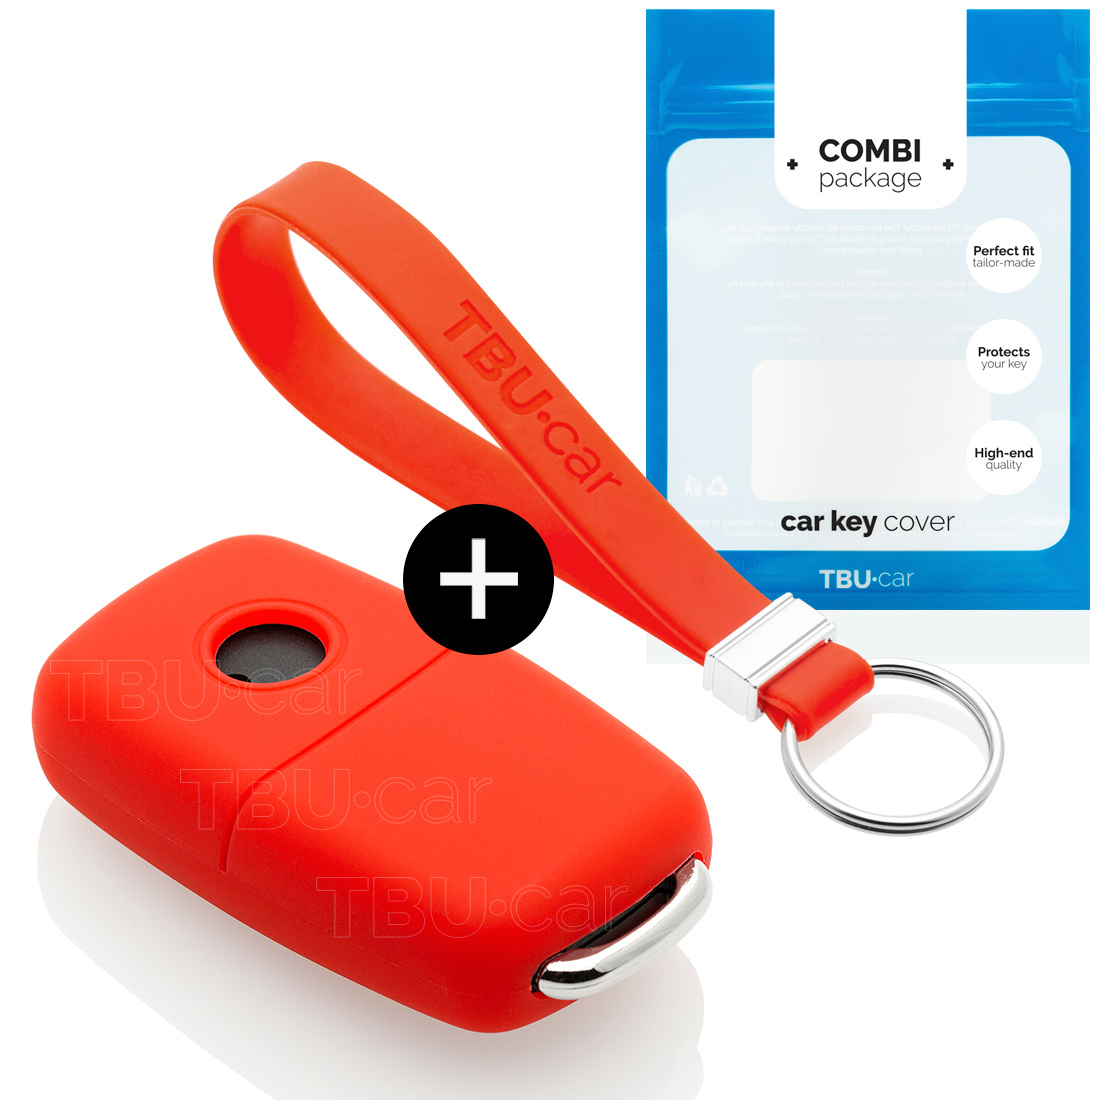 Volkswagen Car key cover - Silicone Protective Remote Key Shell - FOB Case Cover - Red